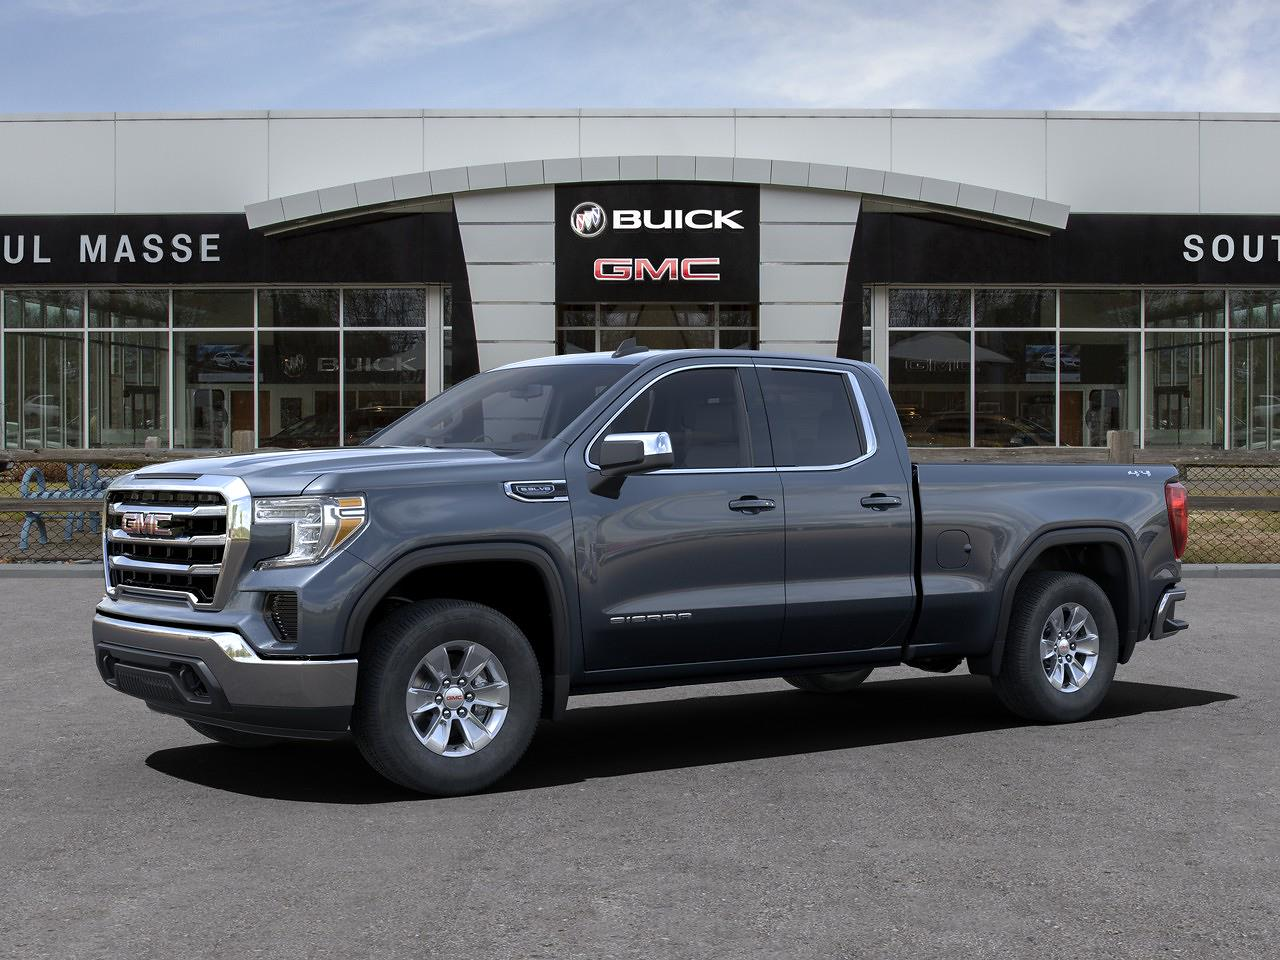 2021 GMC Sierra 1500 Double Cab 4x4, Pickup #SR1290 - photo 3